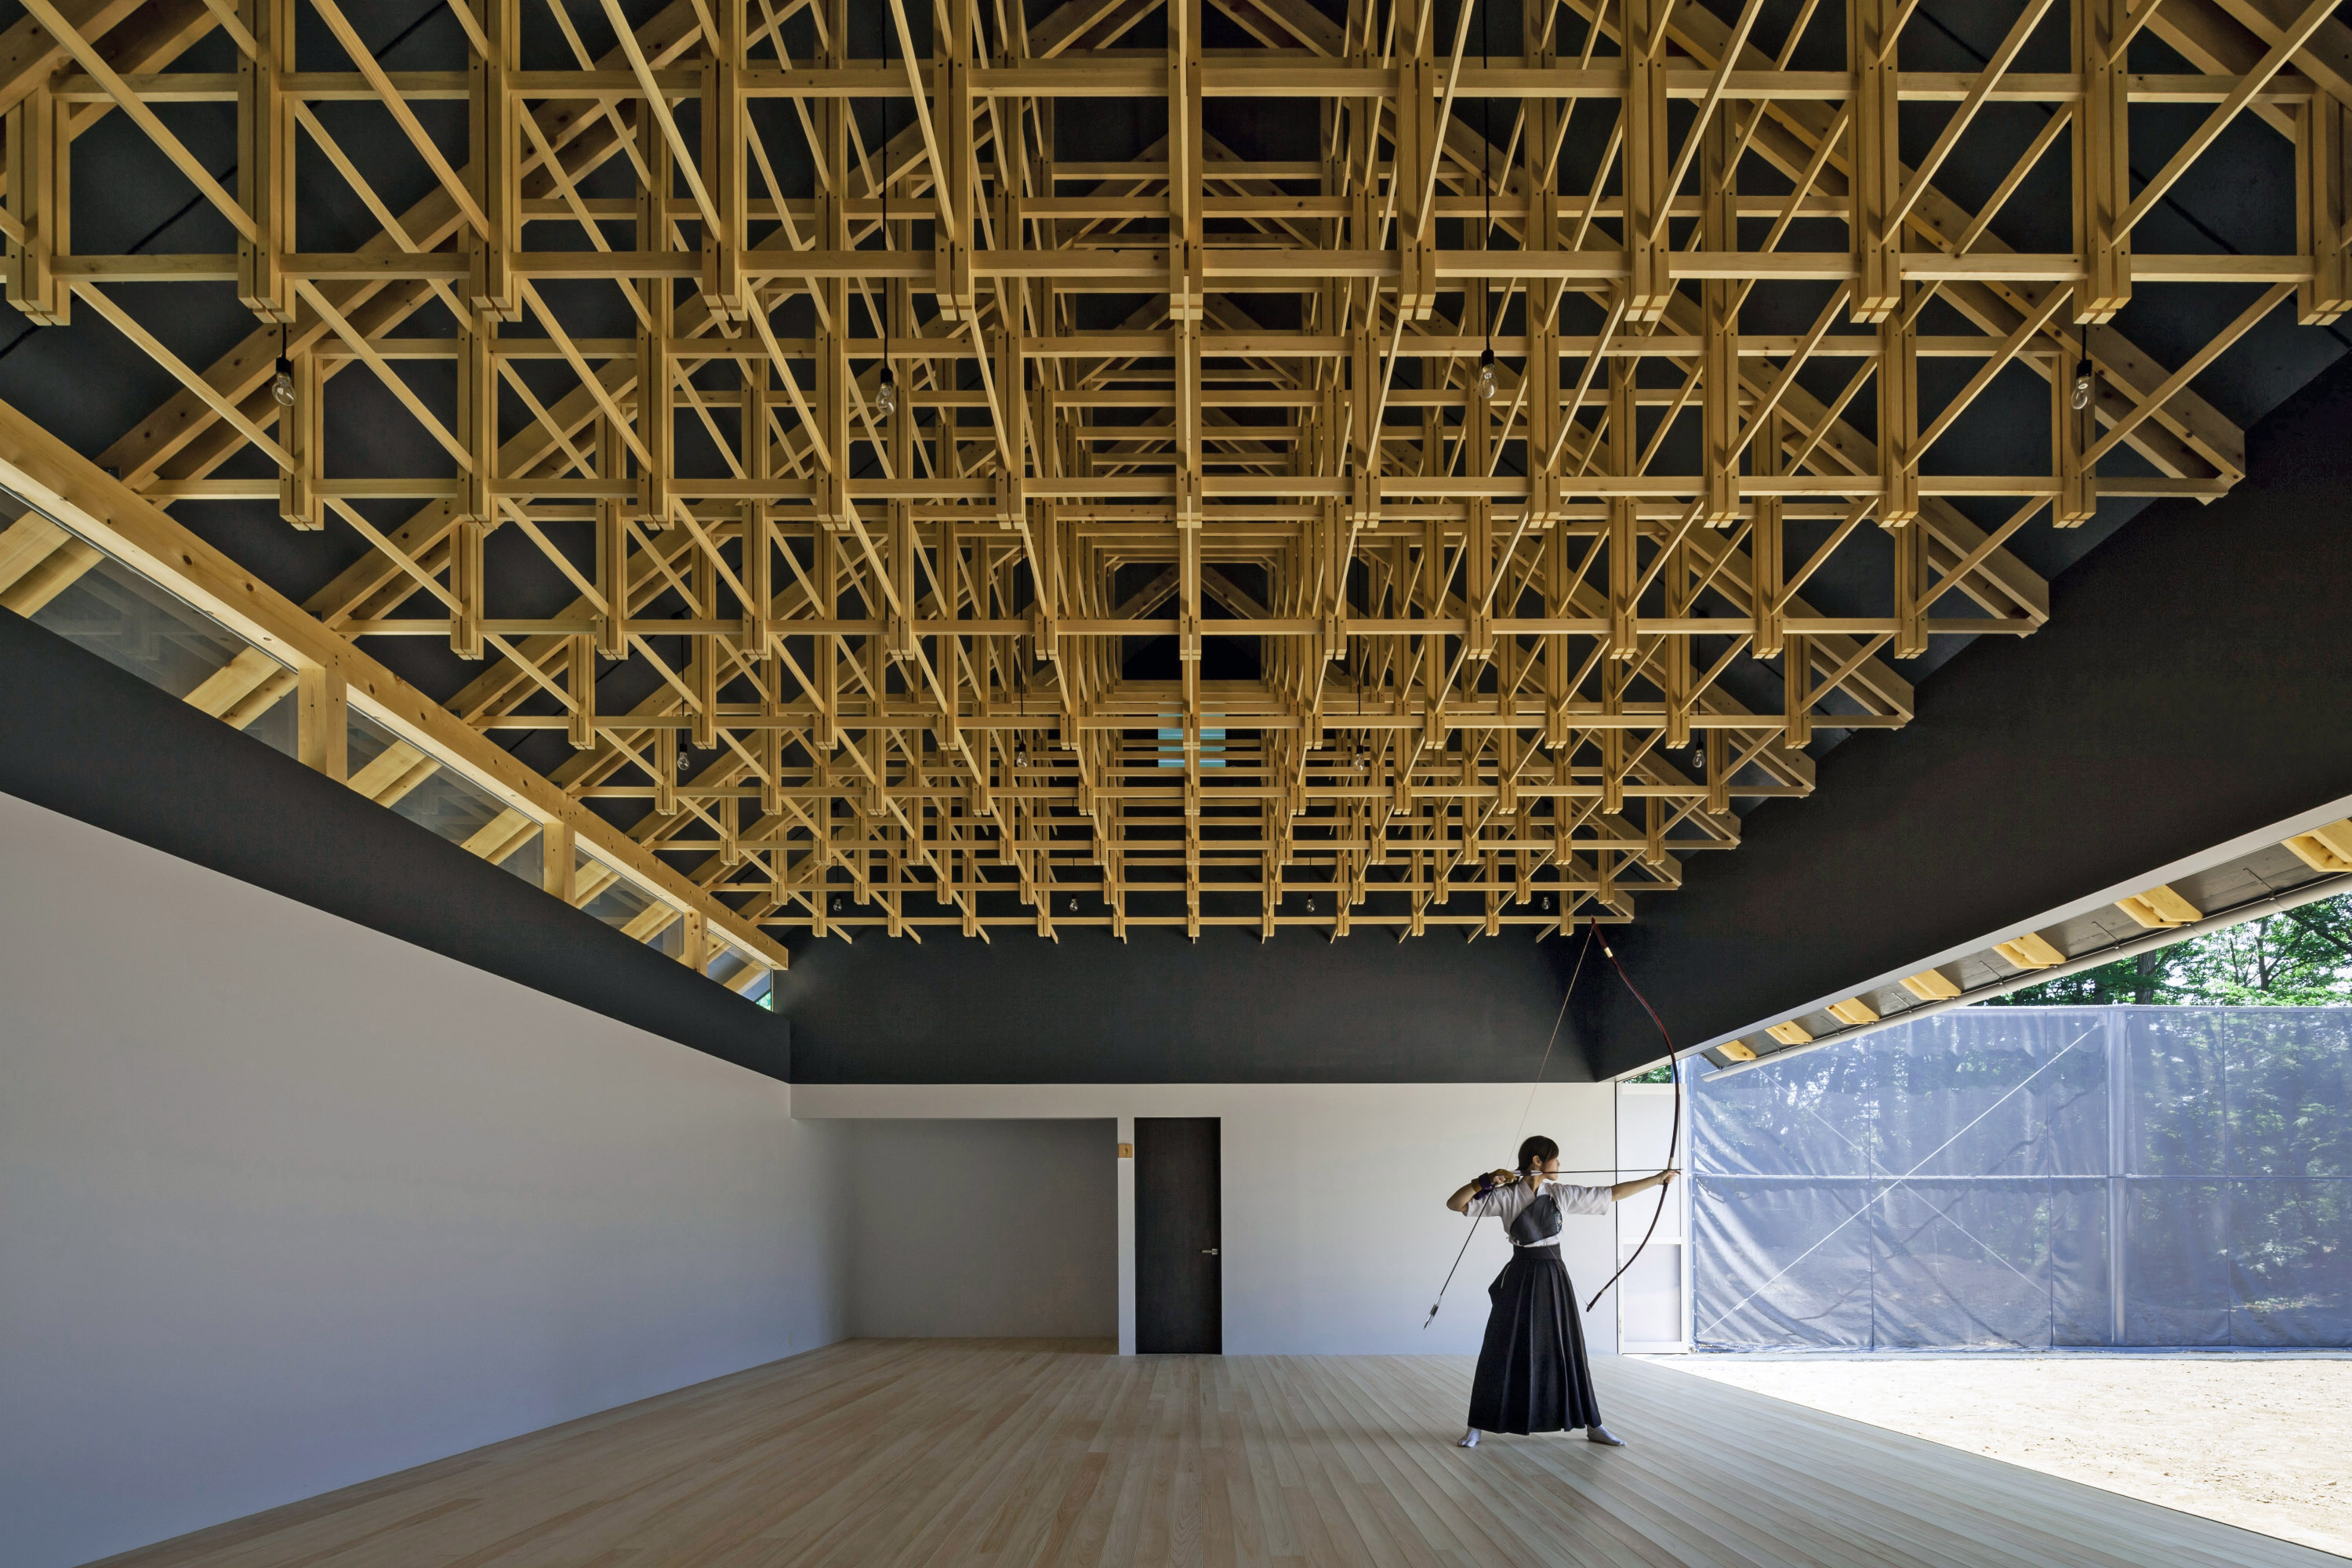 Archery Hall - FT Architects